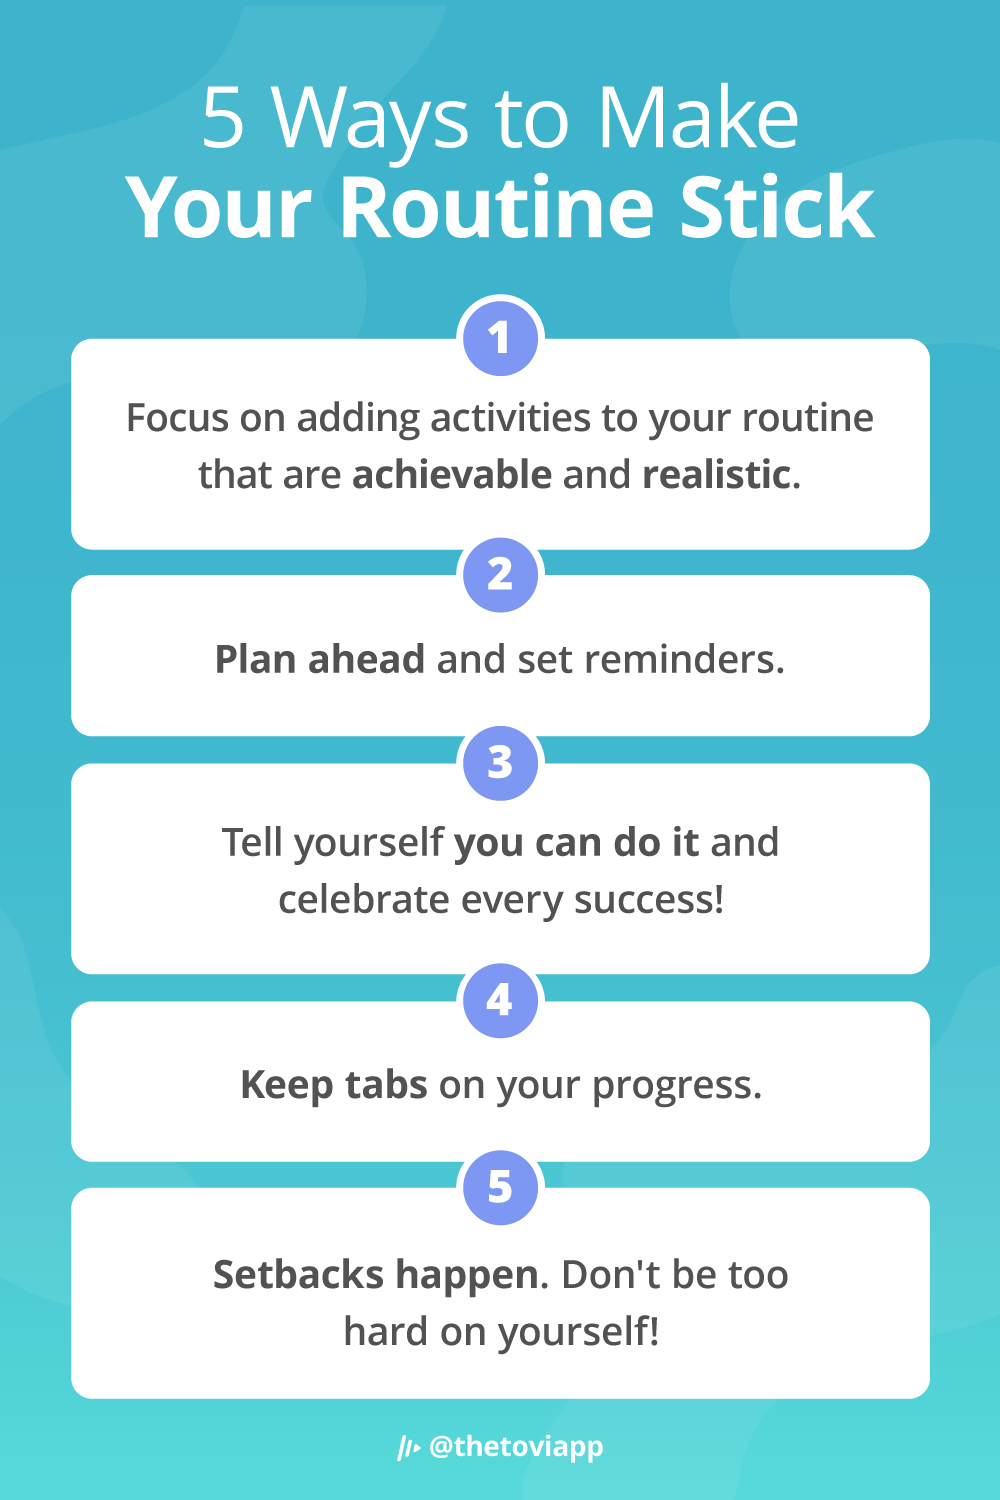 Infographic explaining 5 ways to make your routine stick